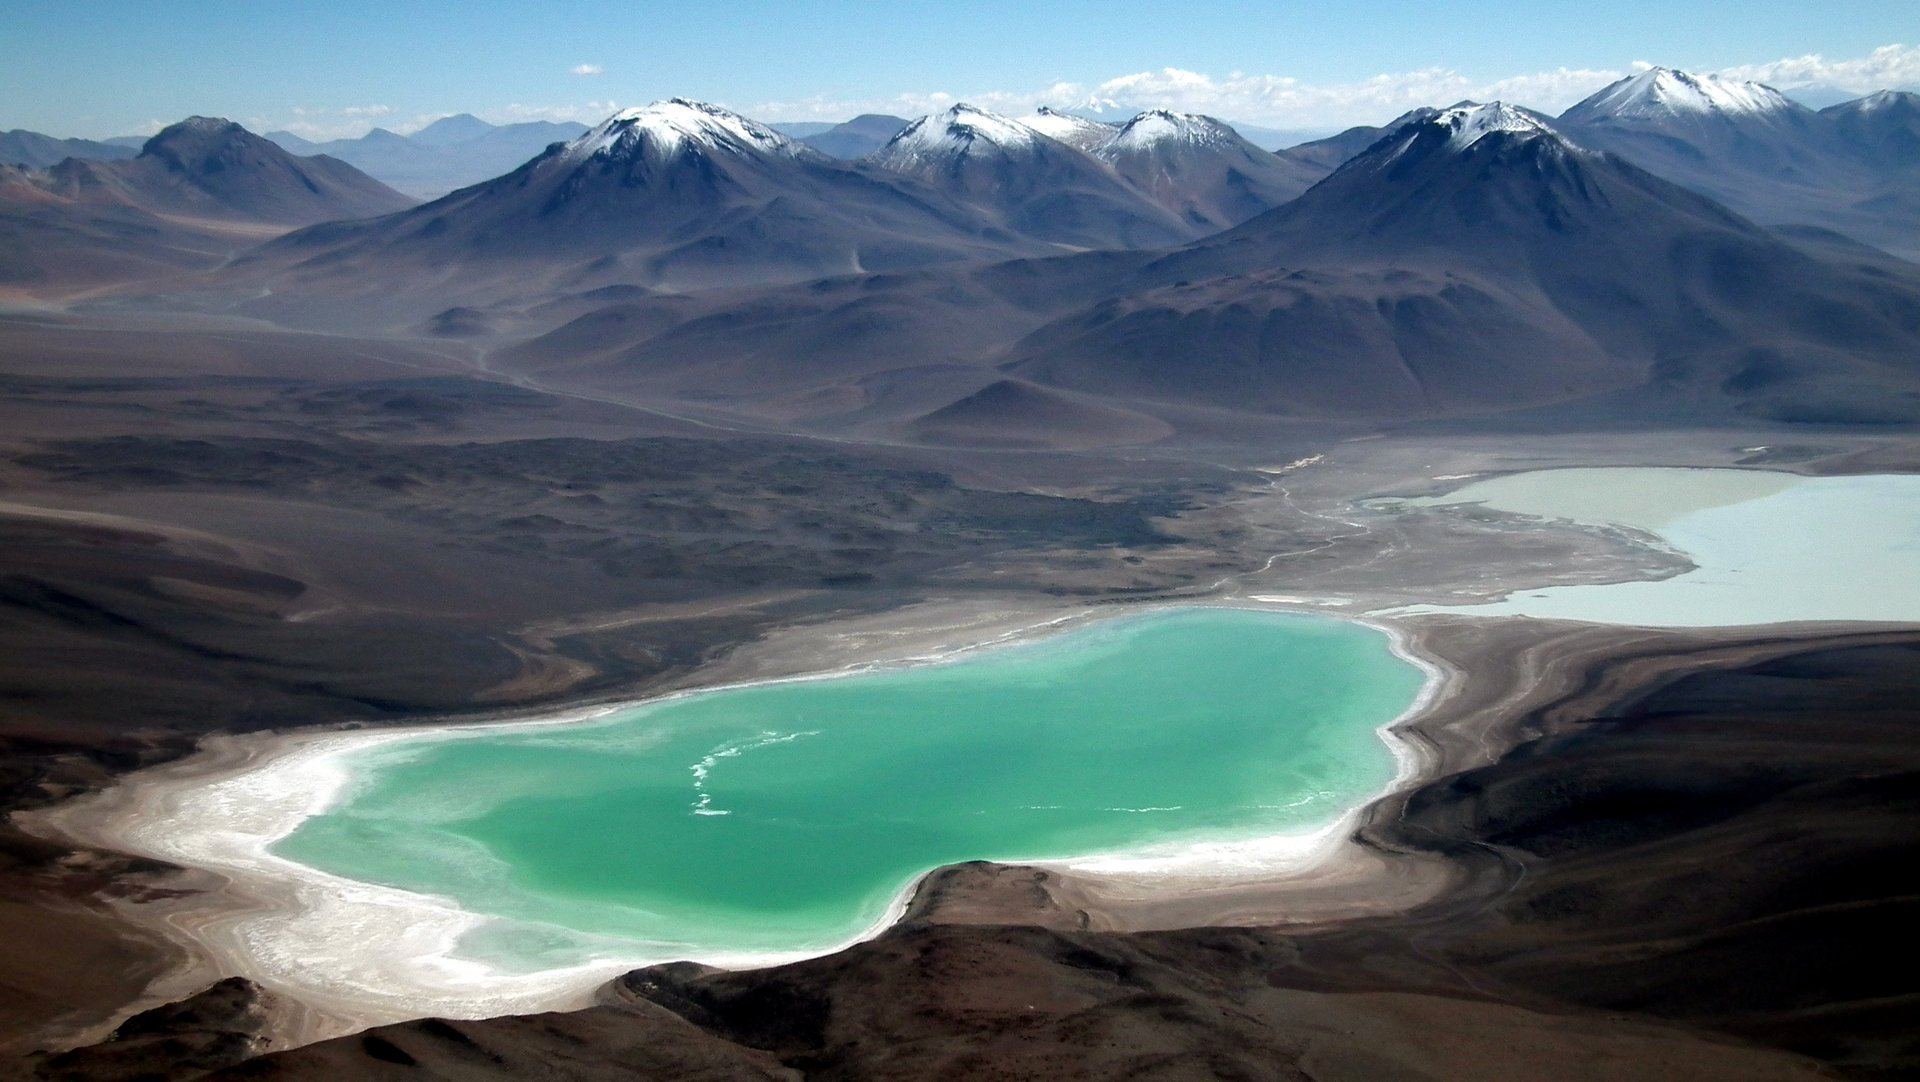 Laguna Verde and Laguna Blanca as seen from the summit of the Licancabur Volcano 2020